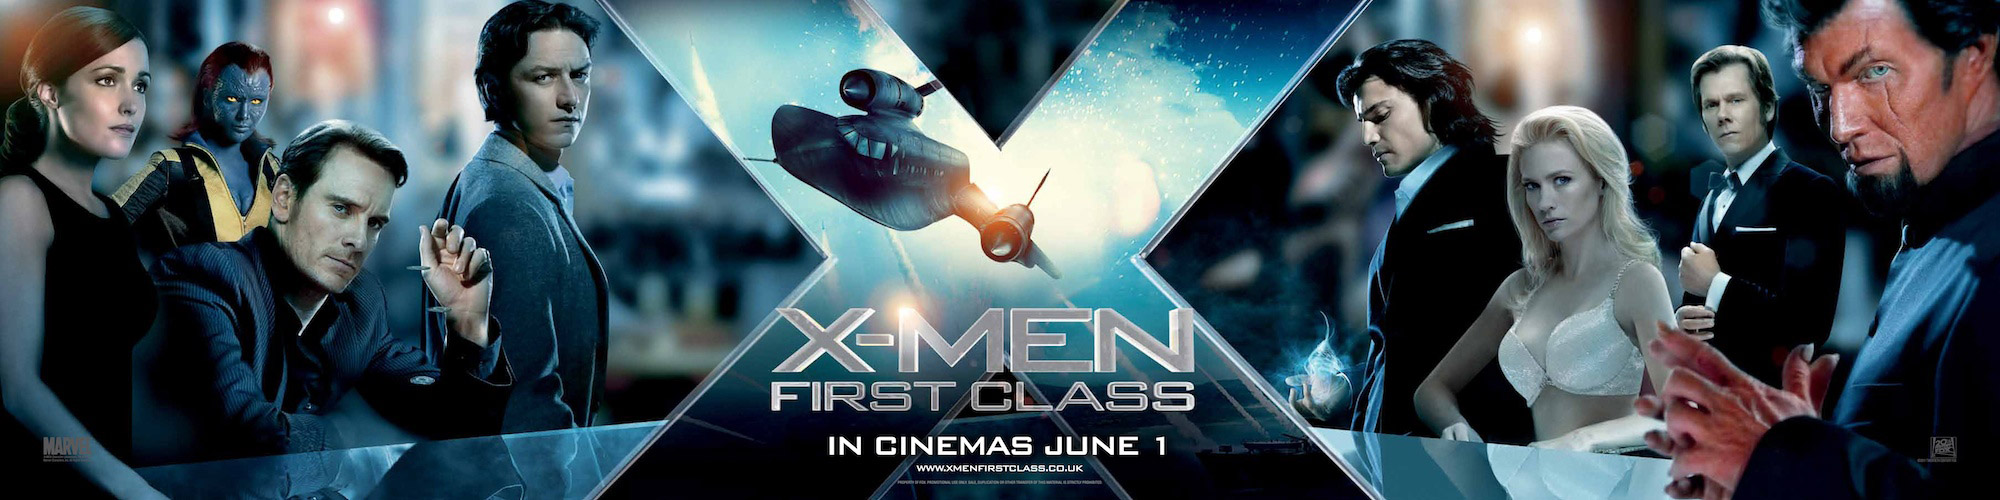 To acquire X men class first characters pictures trends